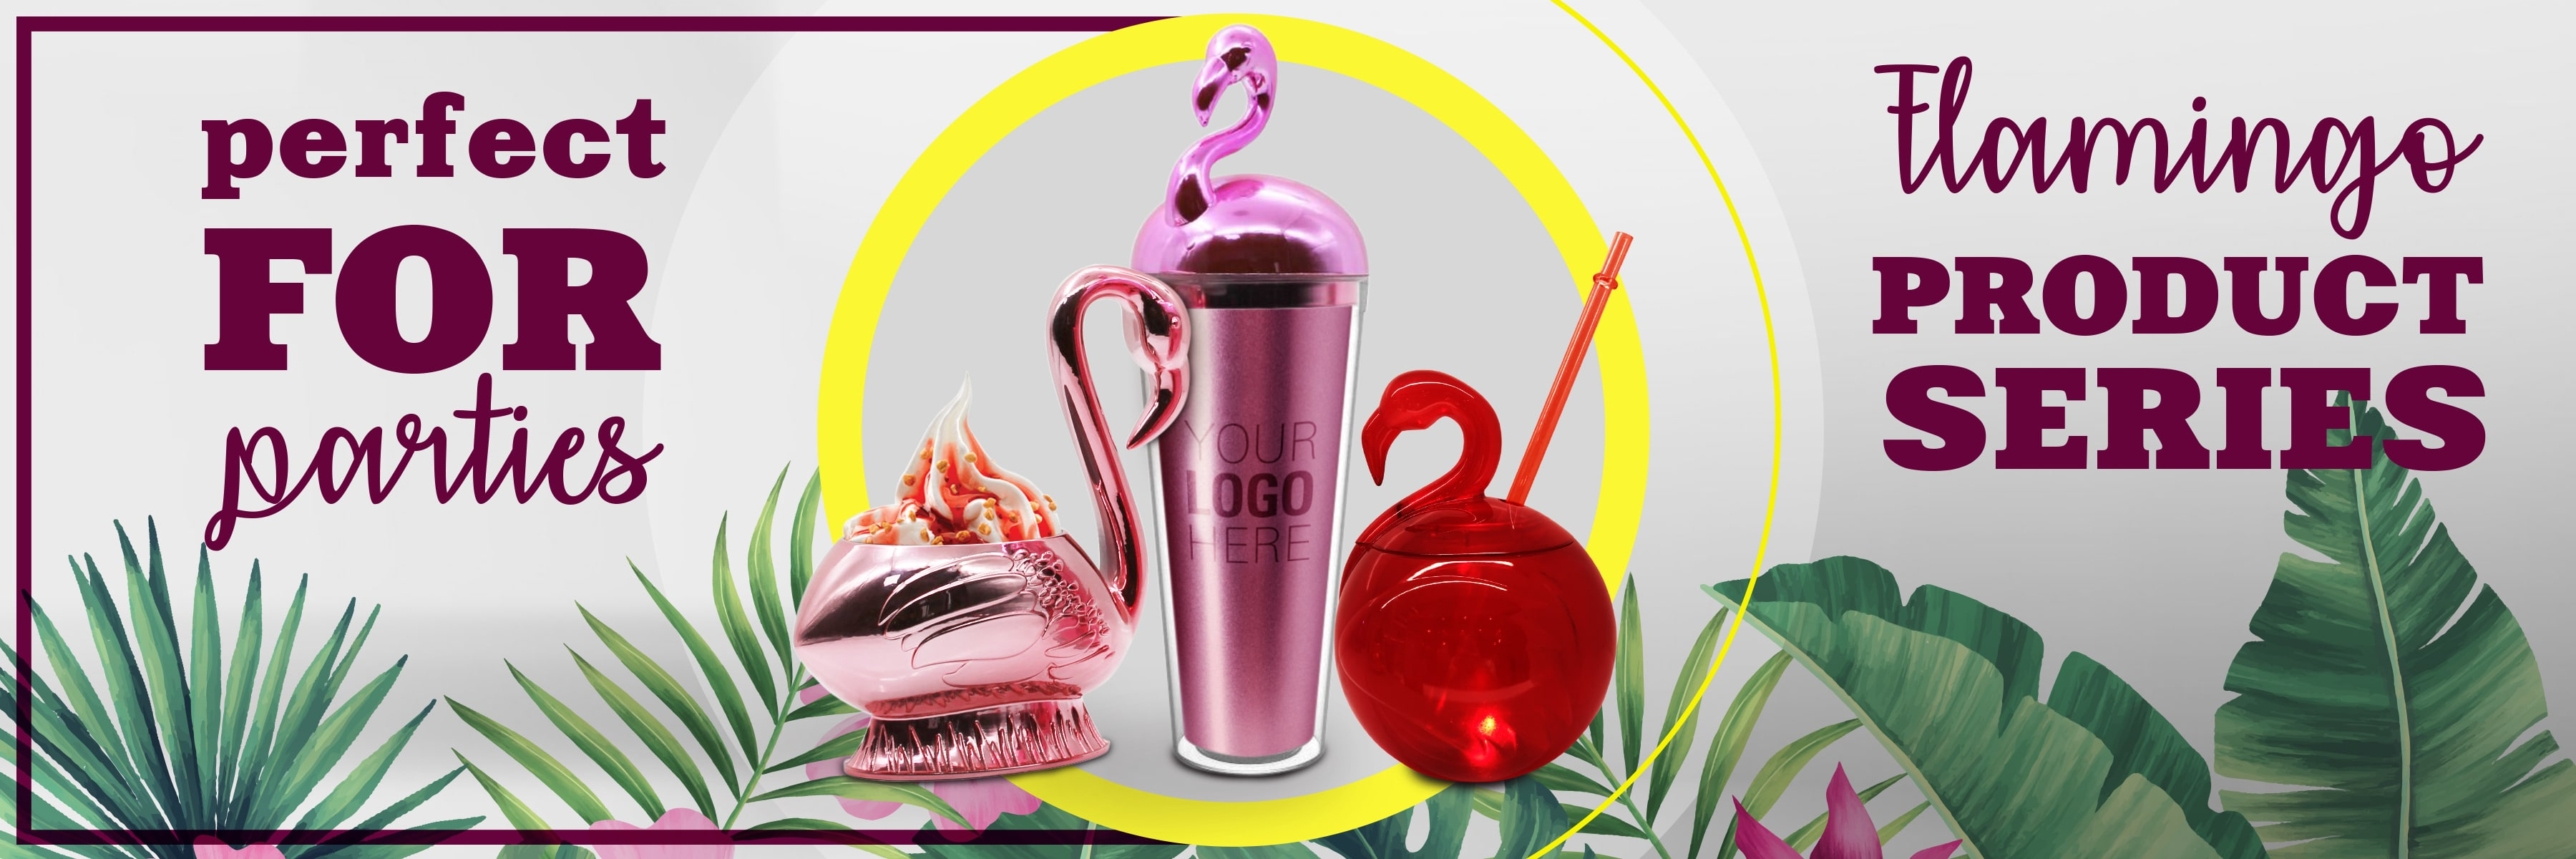 flamingo product line